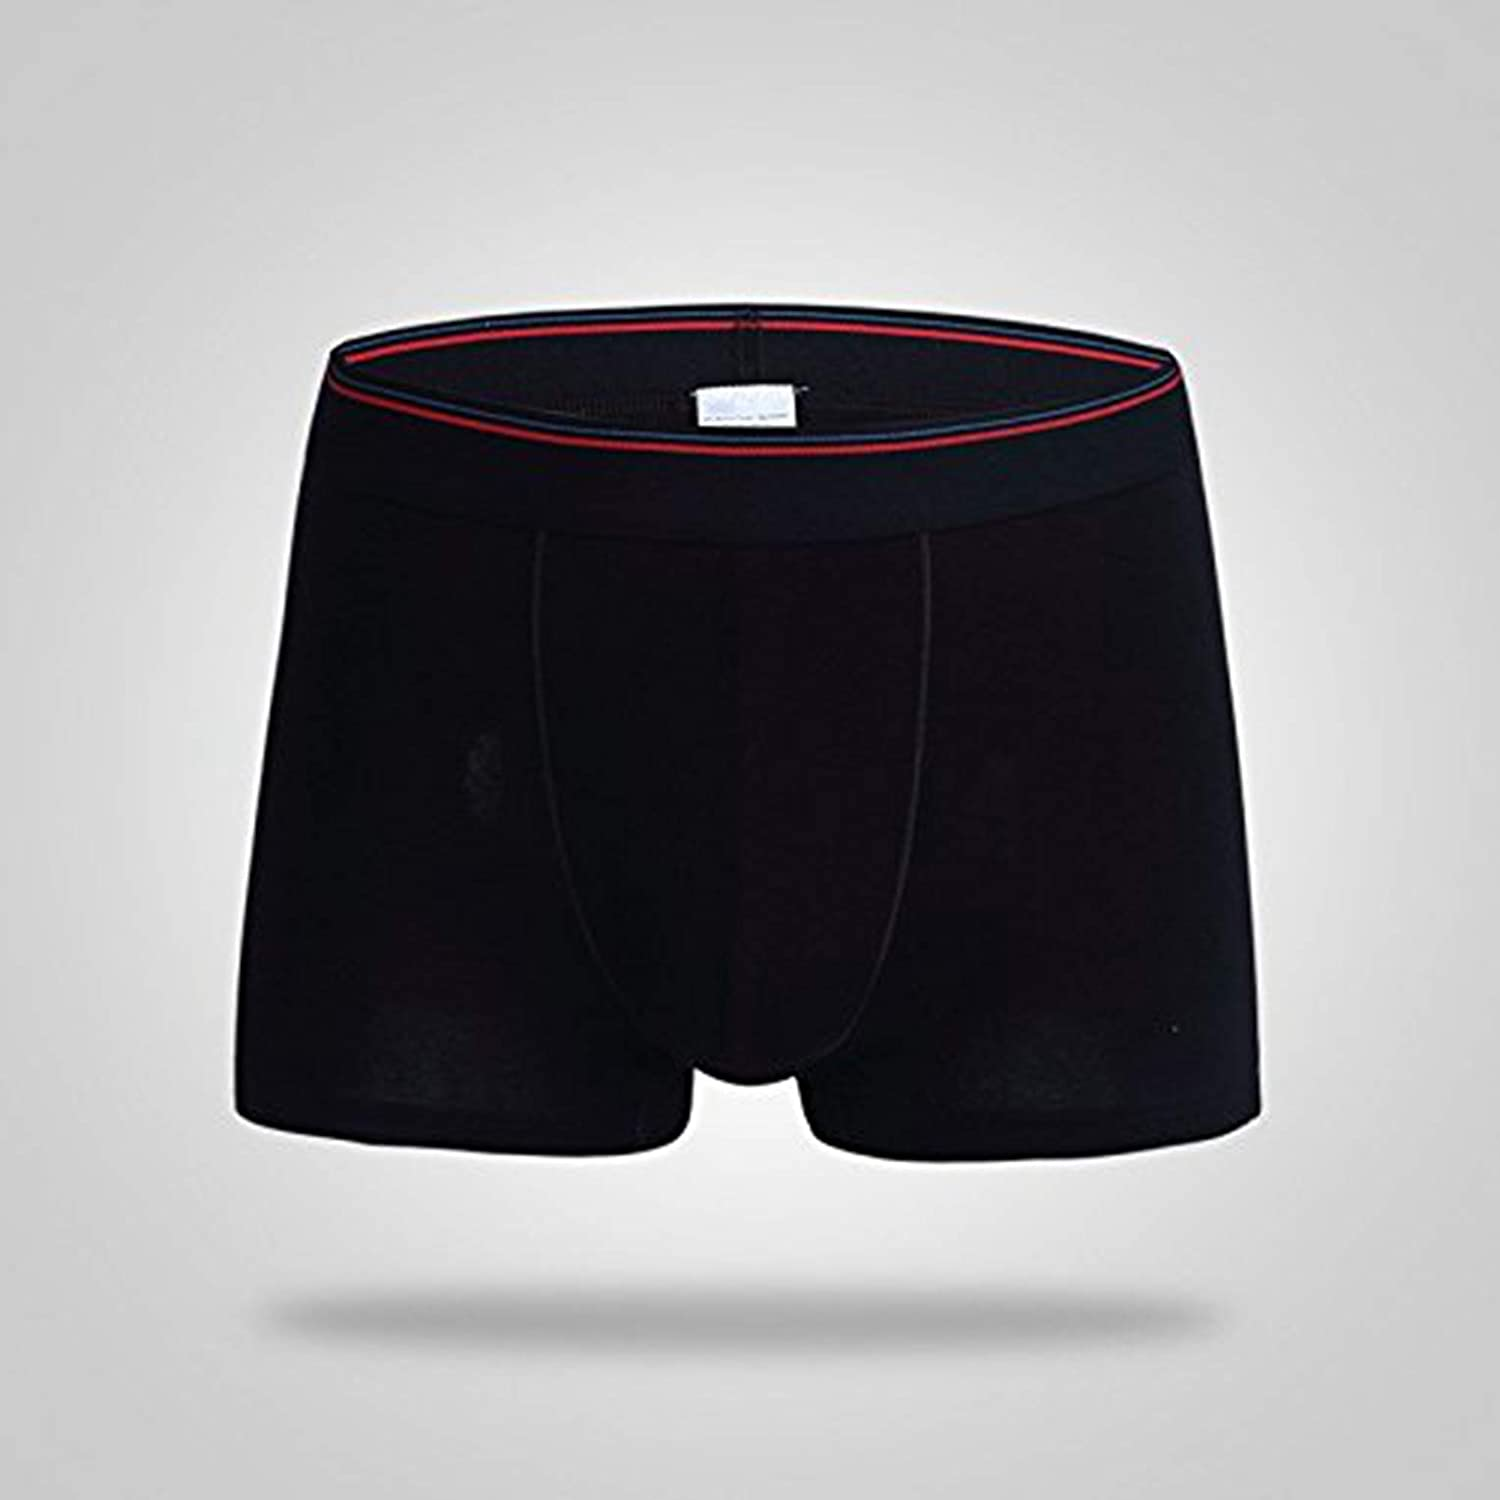 Large,Black Men Maryland Crab Lacrosse Boxer Brief Underwear Light Weight Casual Breathable Soft Cotton